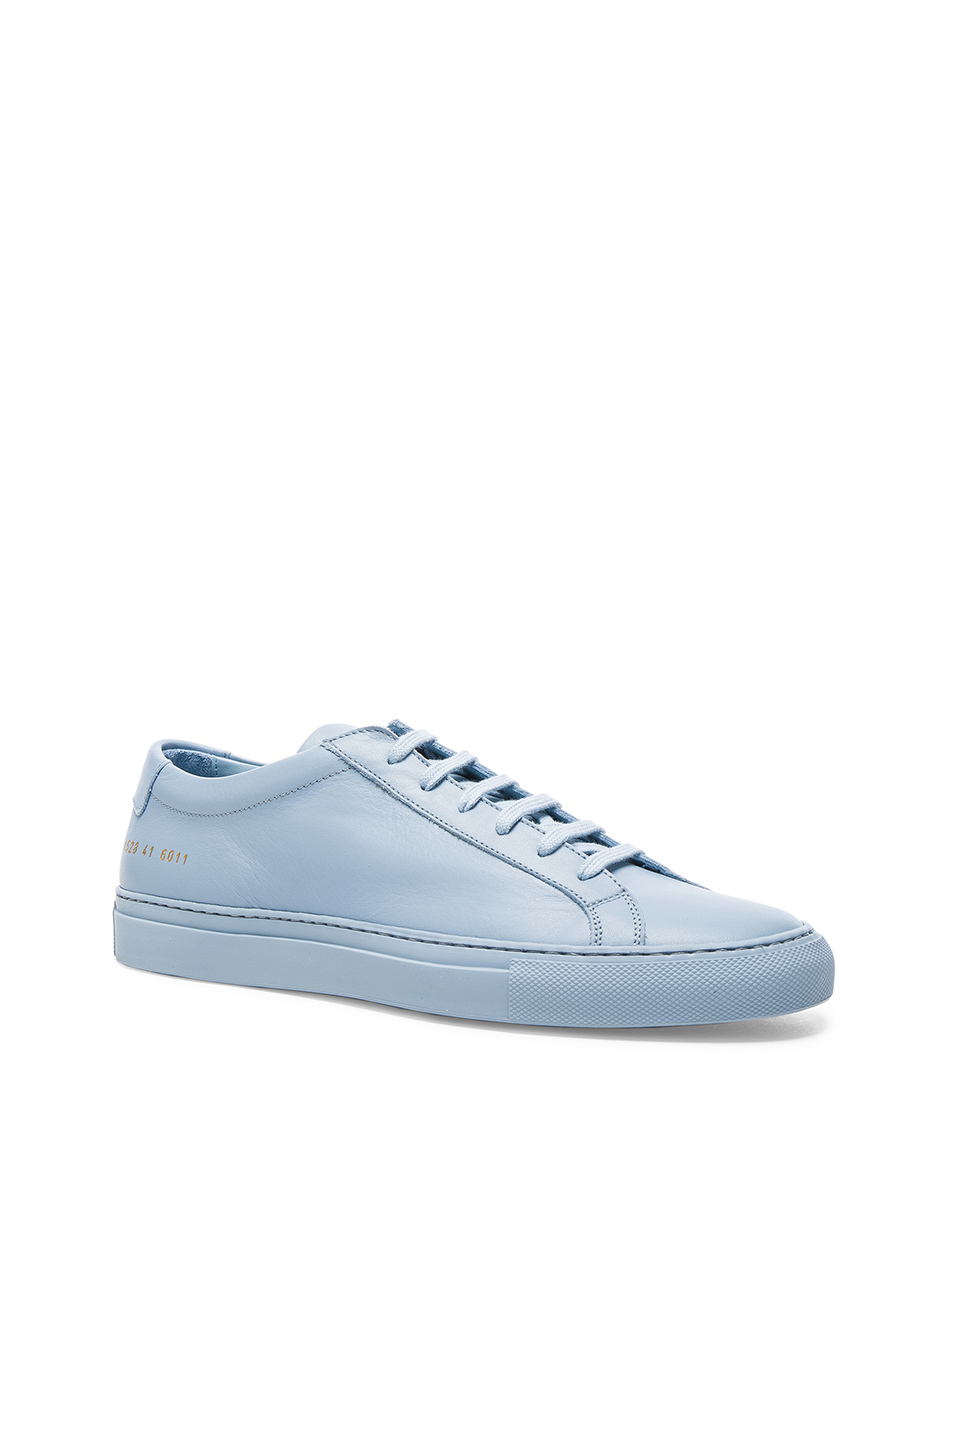 Common Projects Original Achilles Low in Blue